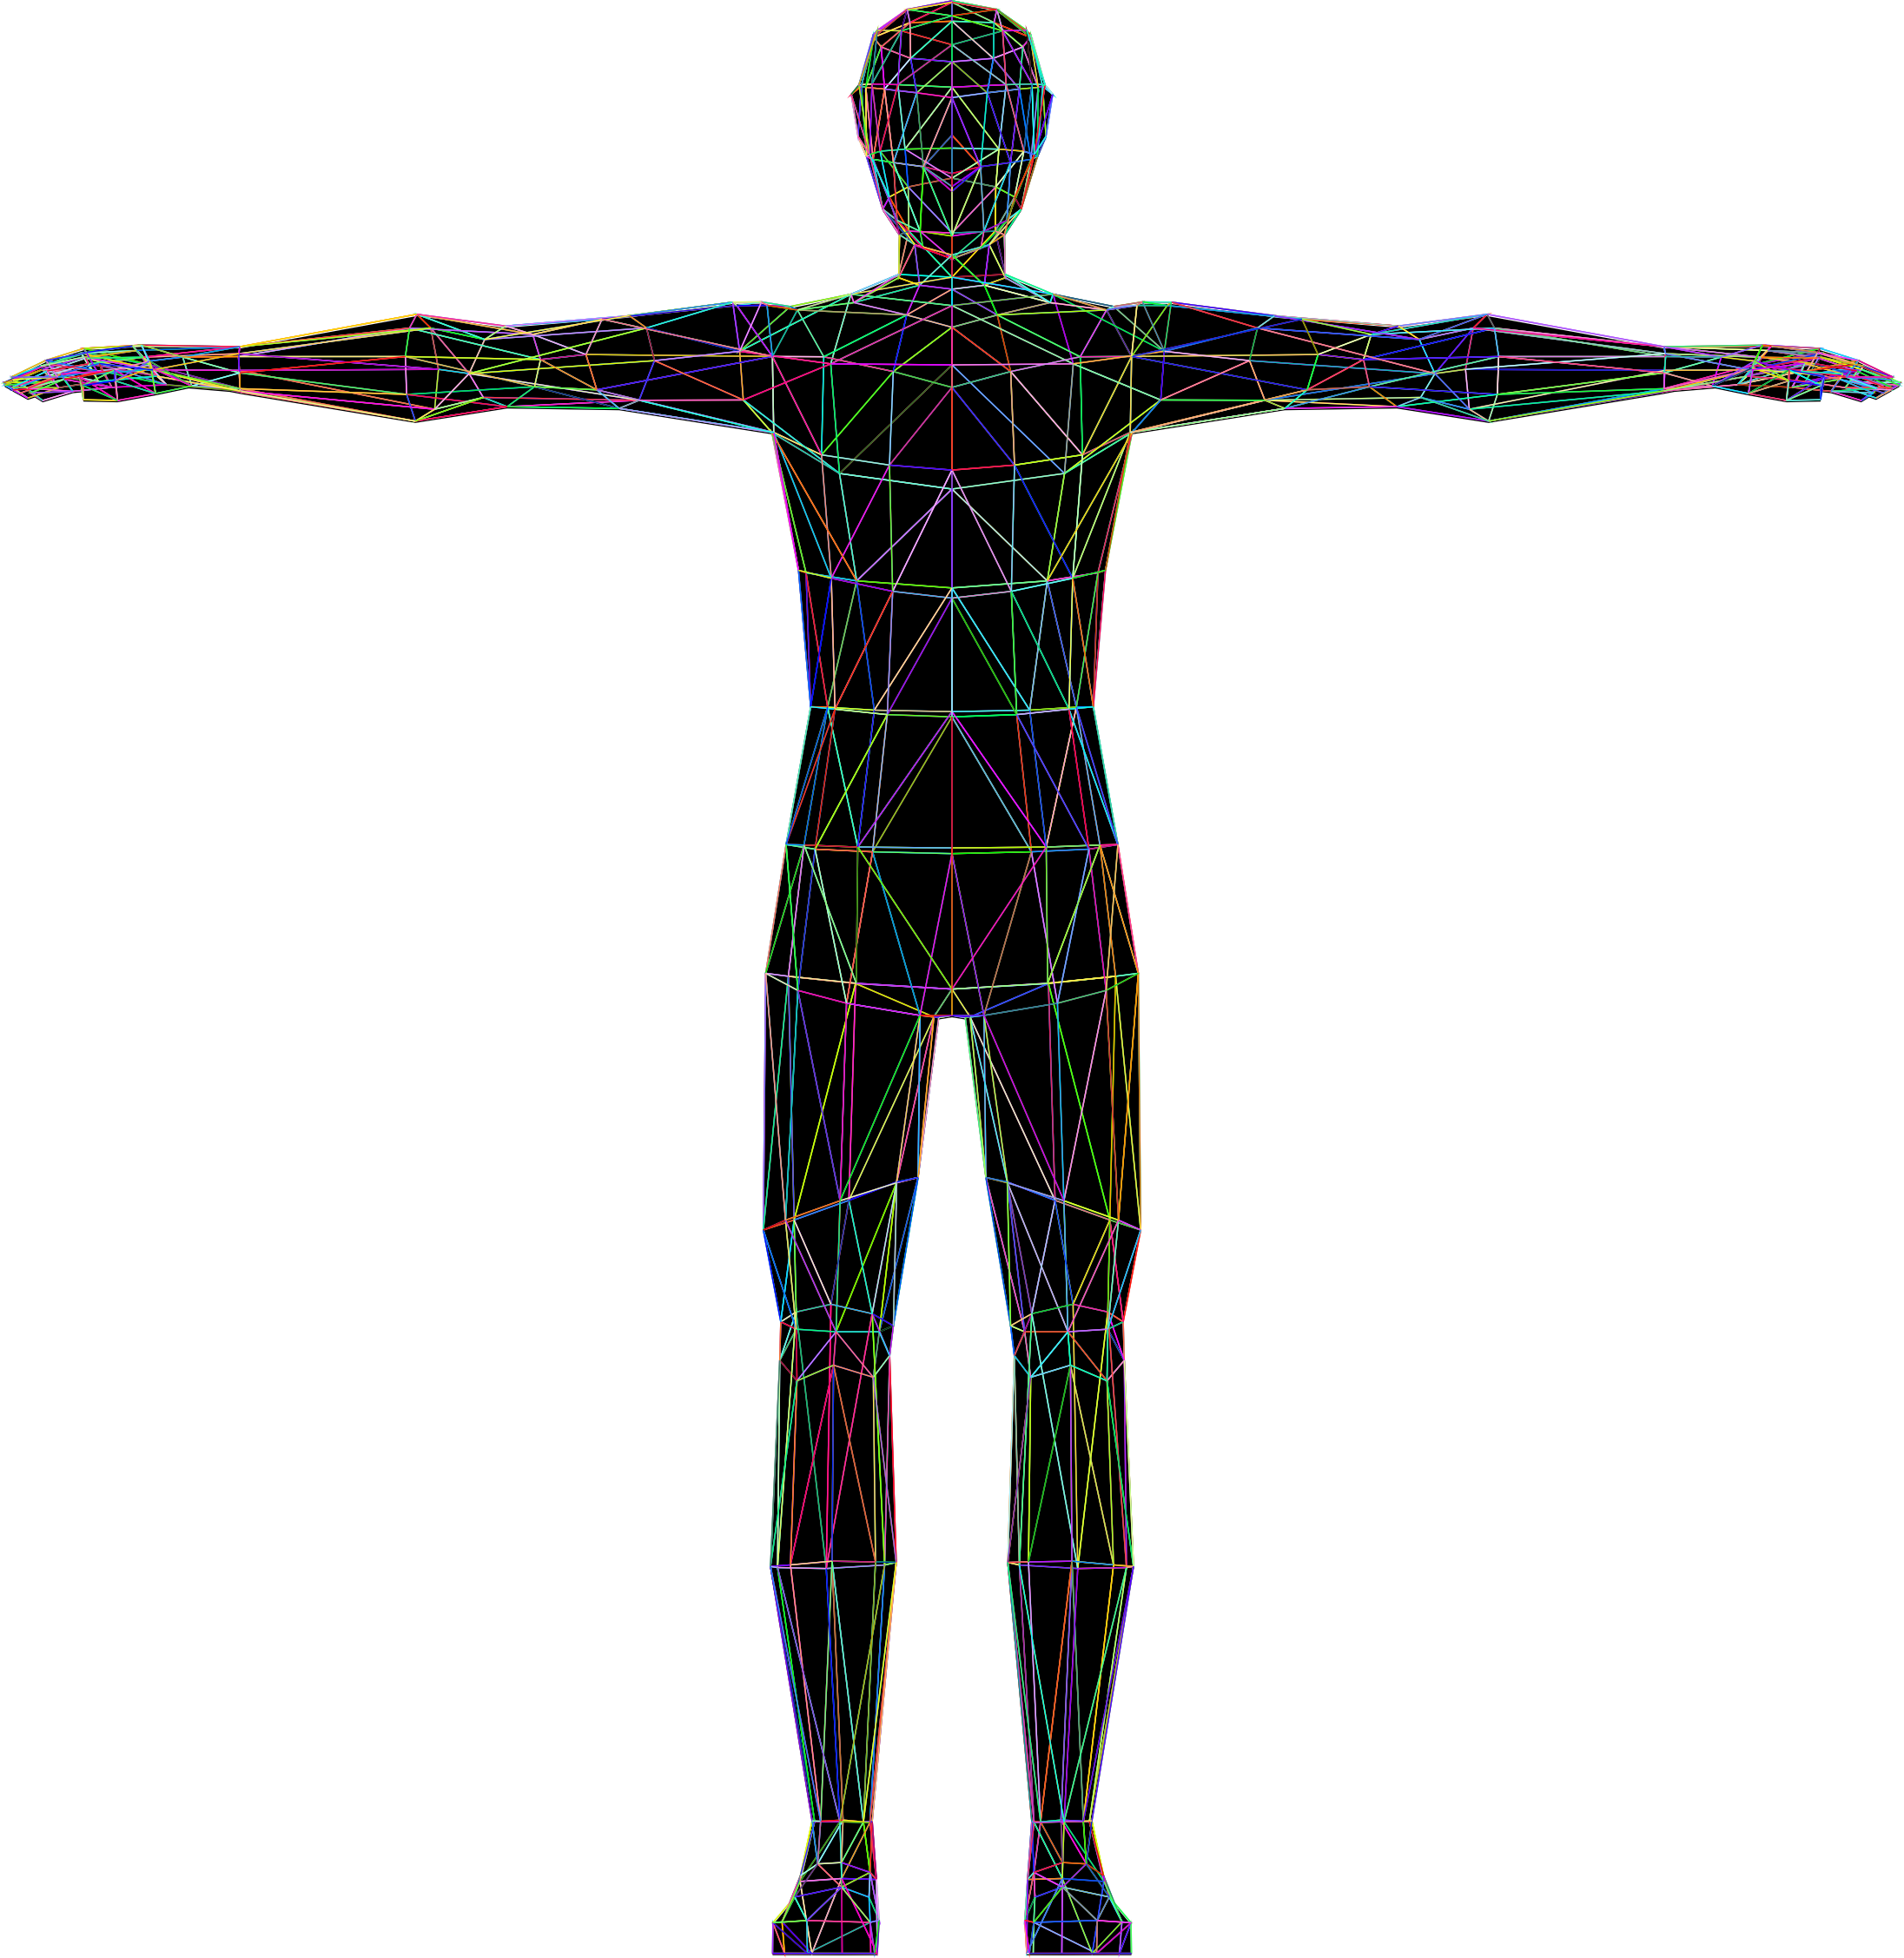 Clipart - Prismatic Low Poly Human Male Wireframe Human Body Icon Png